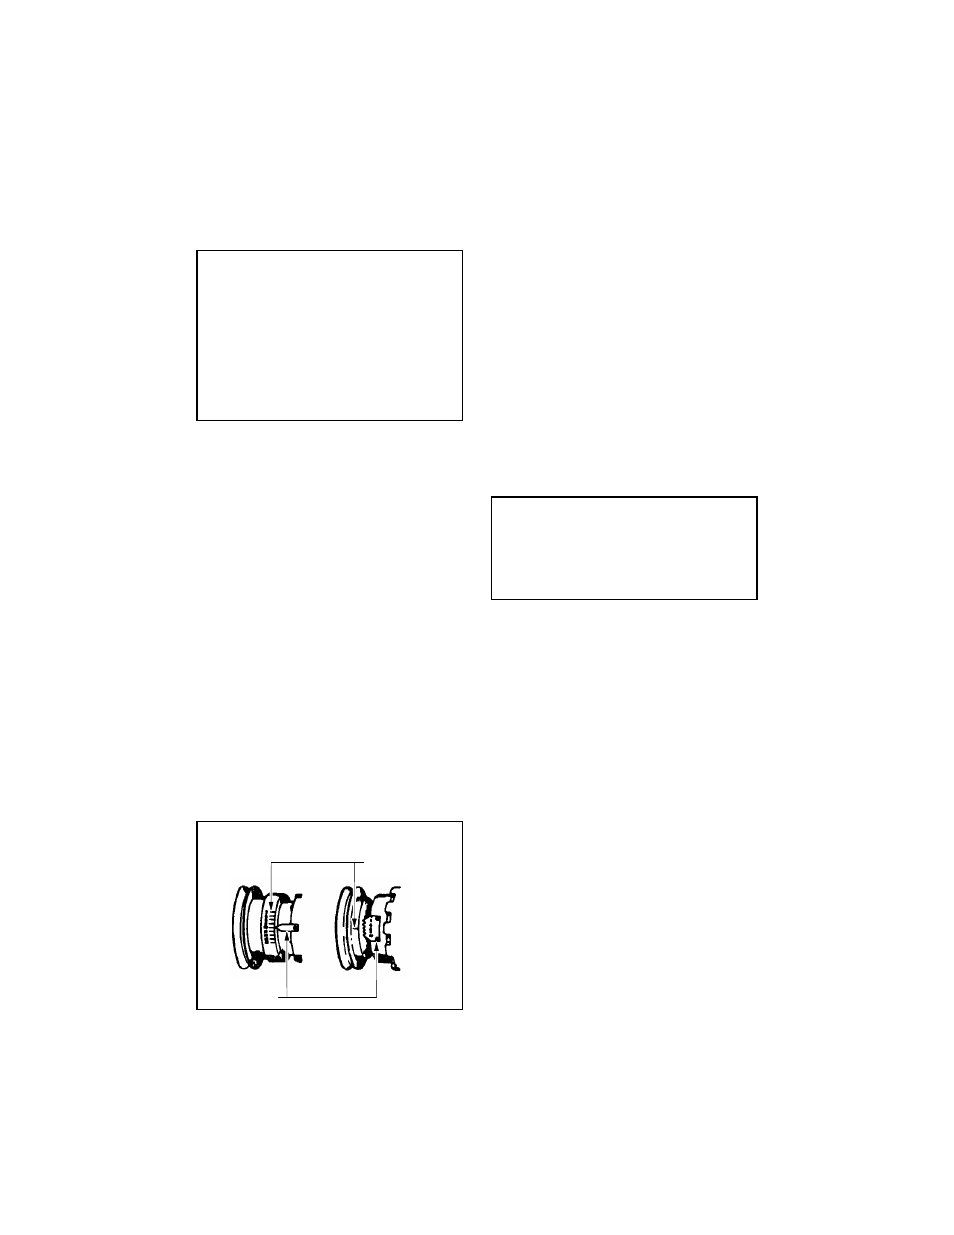 Equus 3551 - INNOVA Inductive Timing Light (DIS) User Manual | Page 8 / 12  | Also for: 3555 - INNOVA Advance Timing Light